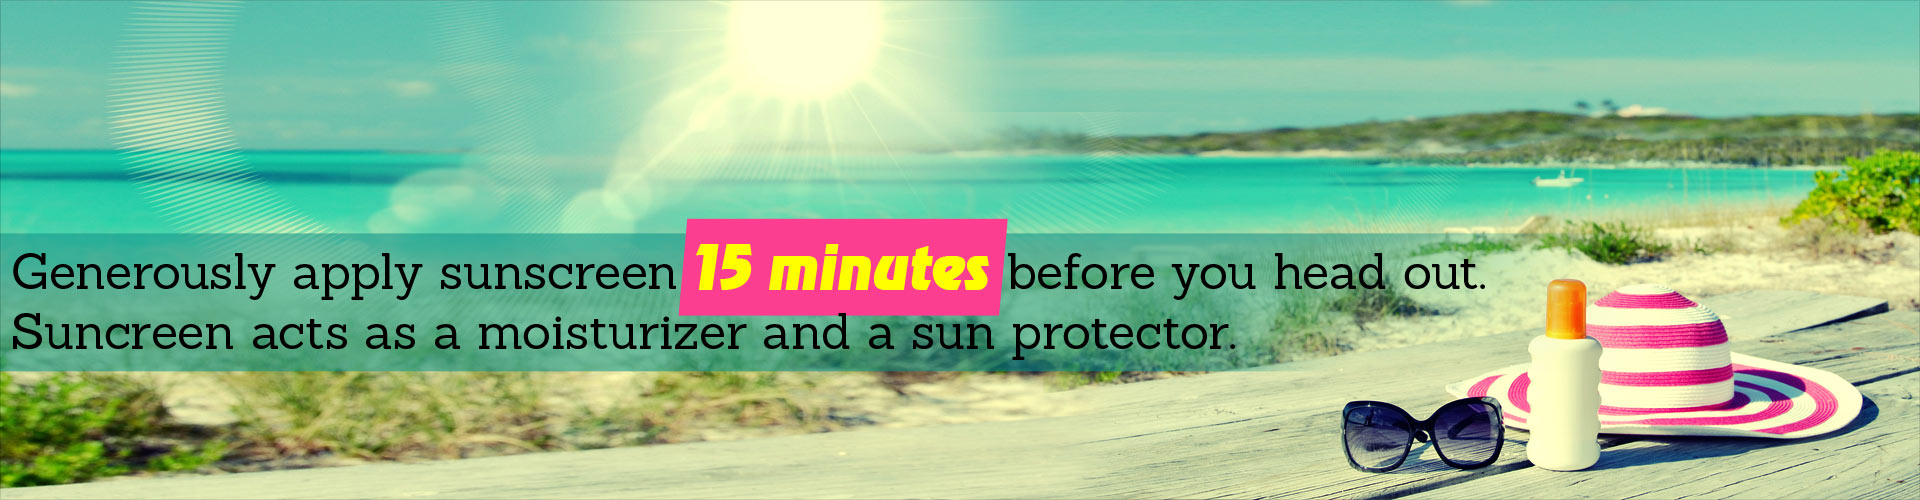 Generously apply sunscreen 15 minutes before you head out. Sunscreen acts as a moisturizer and a sun protector.